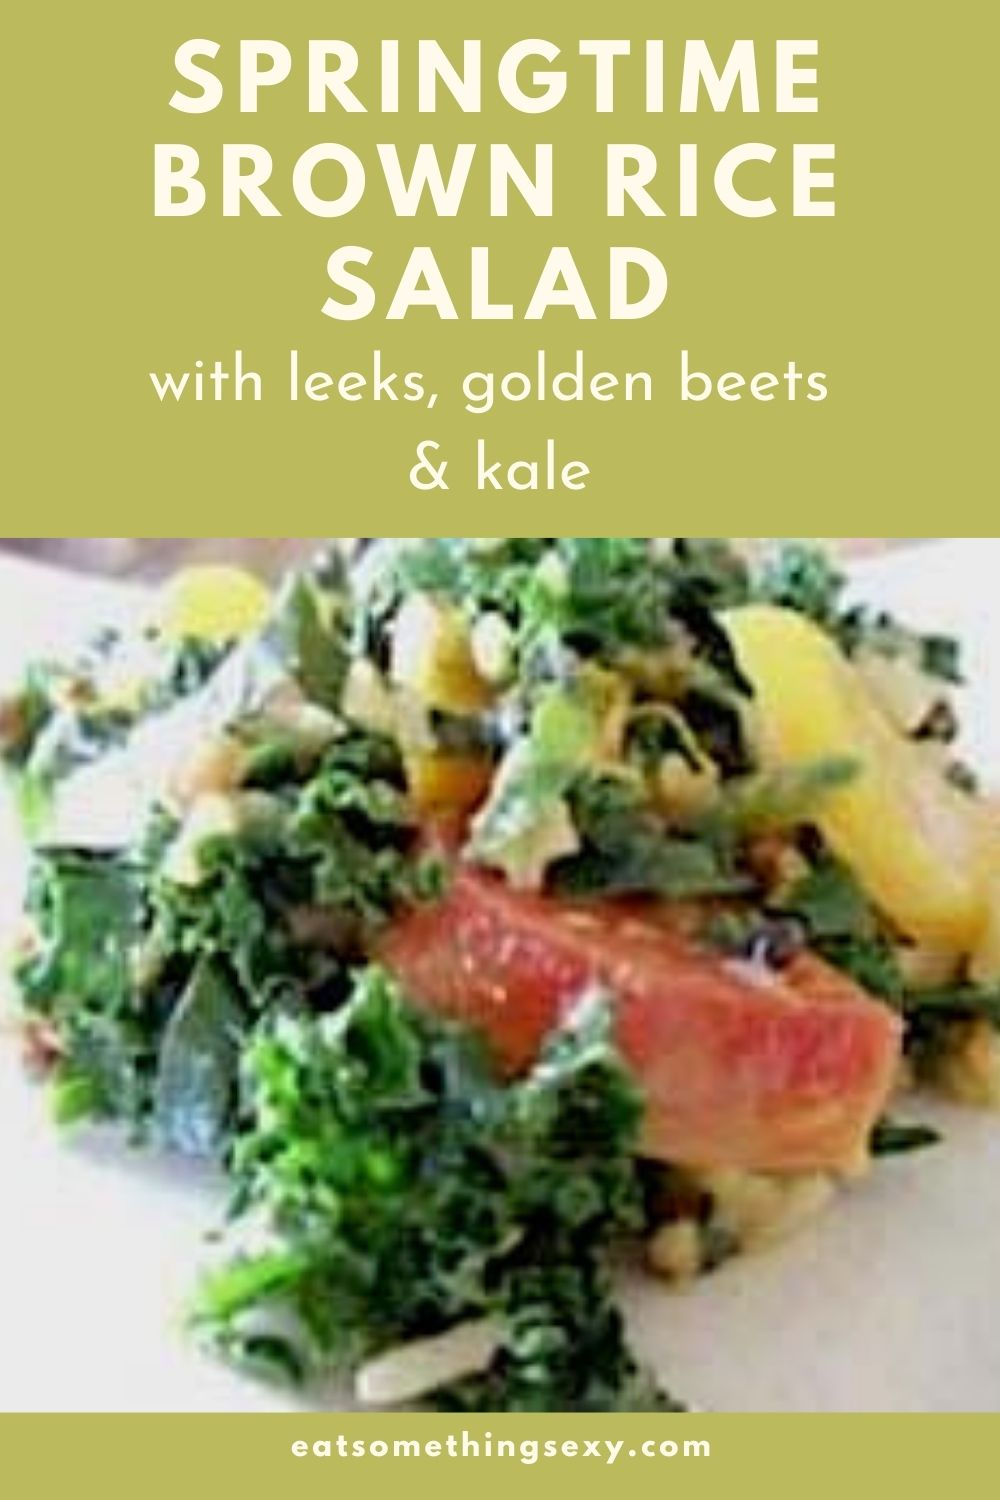 Brown Rice Salad with Leeks, Golden Beets and Kale graphic